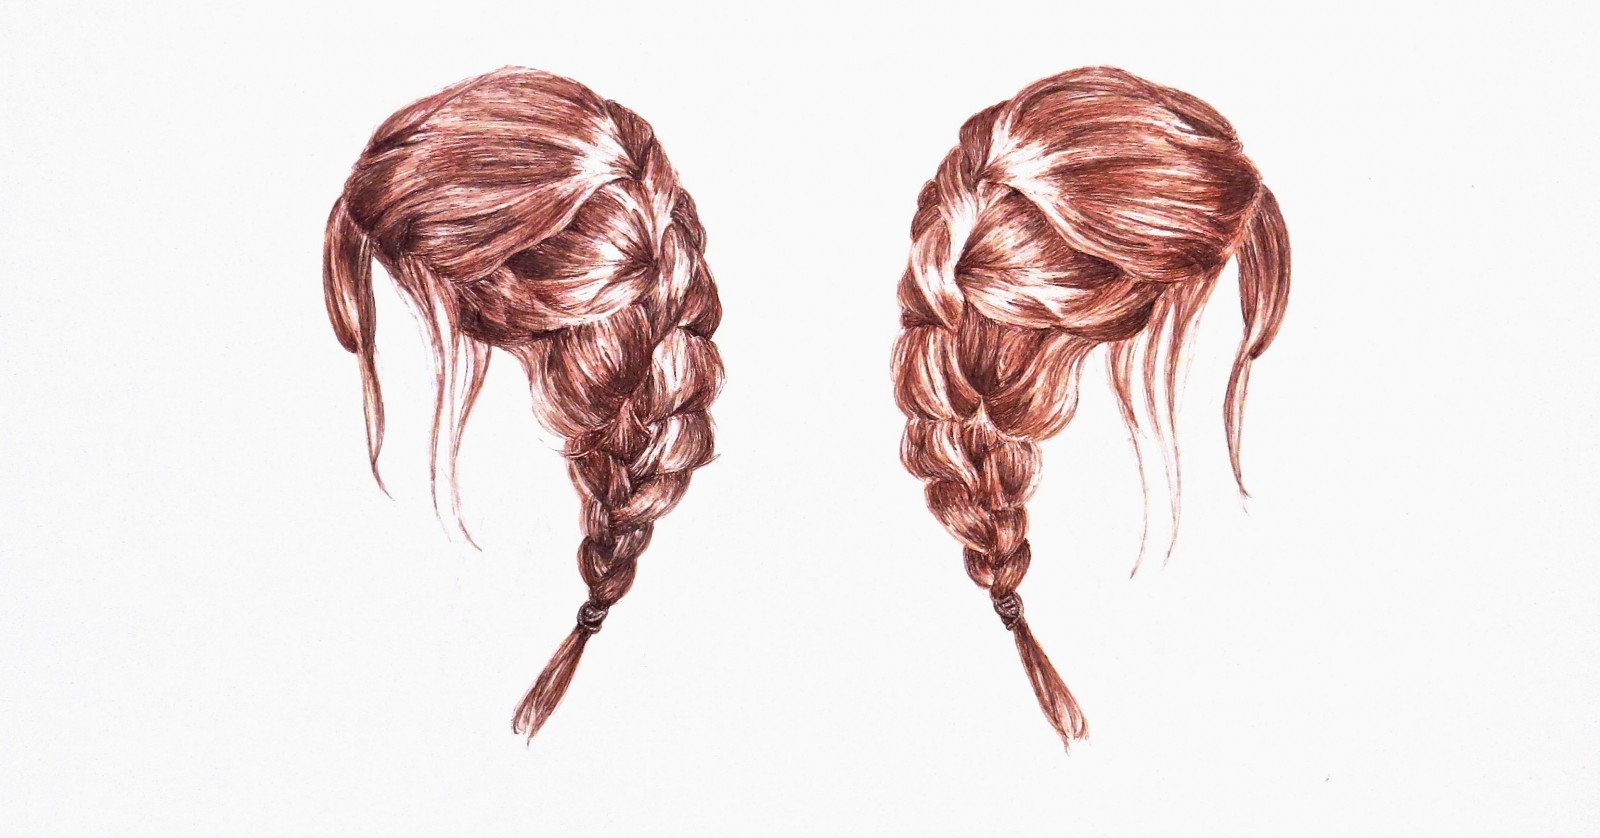 """""""Braids,"""" a 2016 ink on paper drawing by Tricia Butski, is on view in 78 Summer Street from April 28 to 30."""